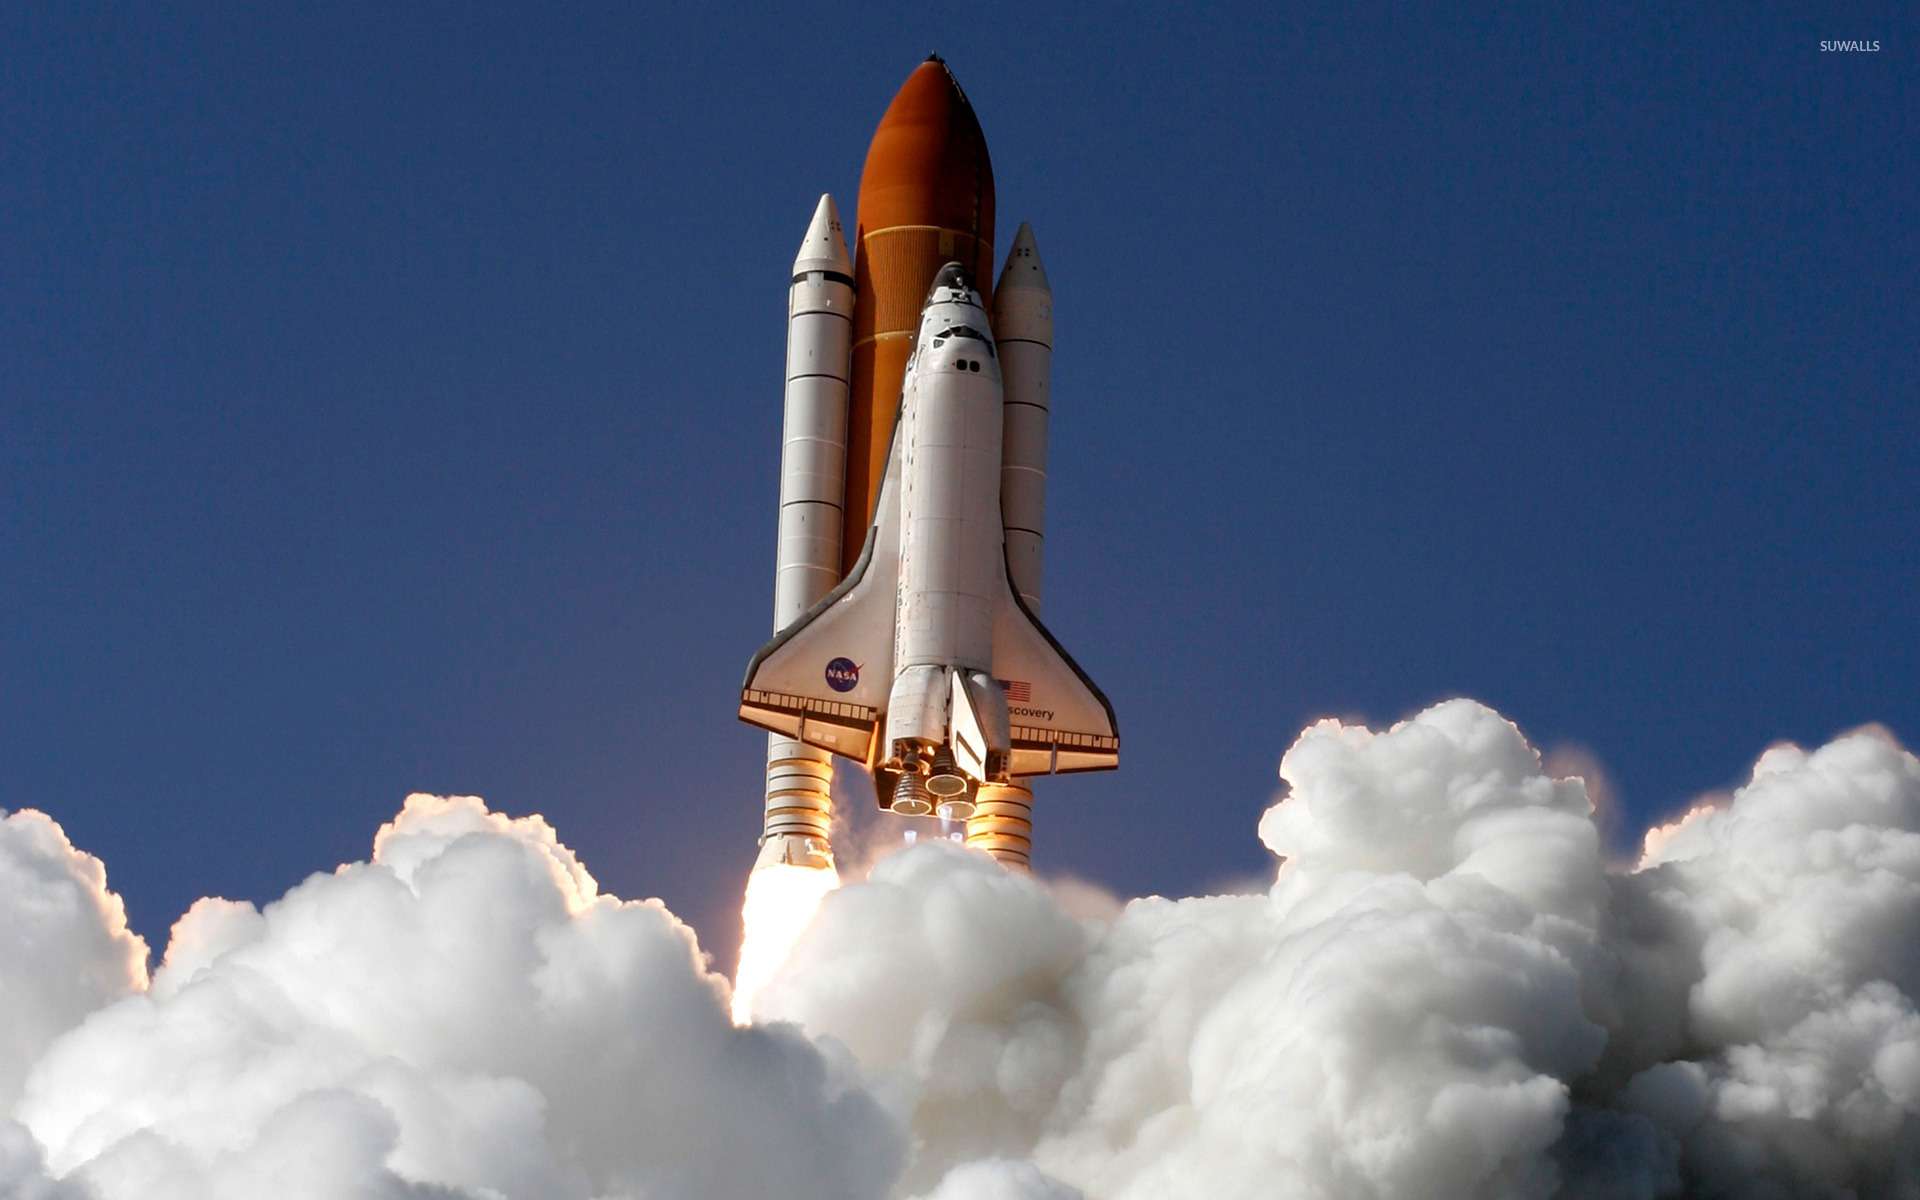 1920x1200 - Space Shuttle atlantis Wallpapers 9